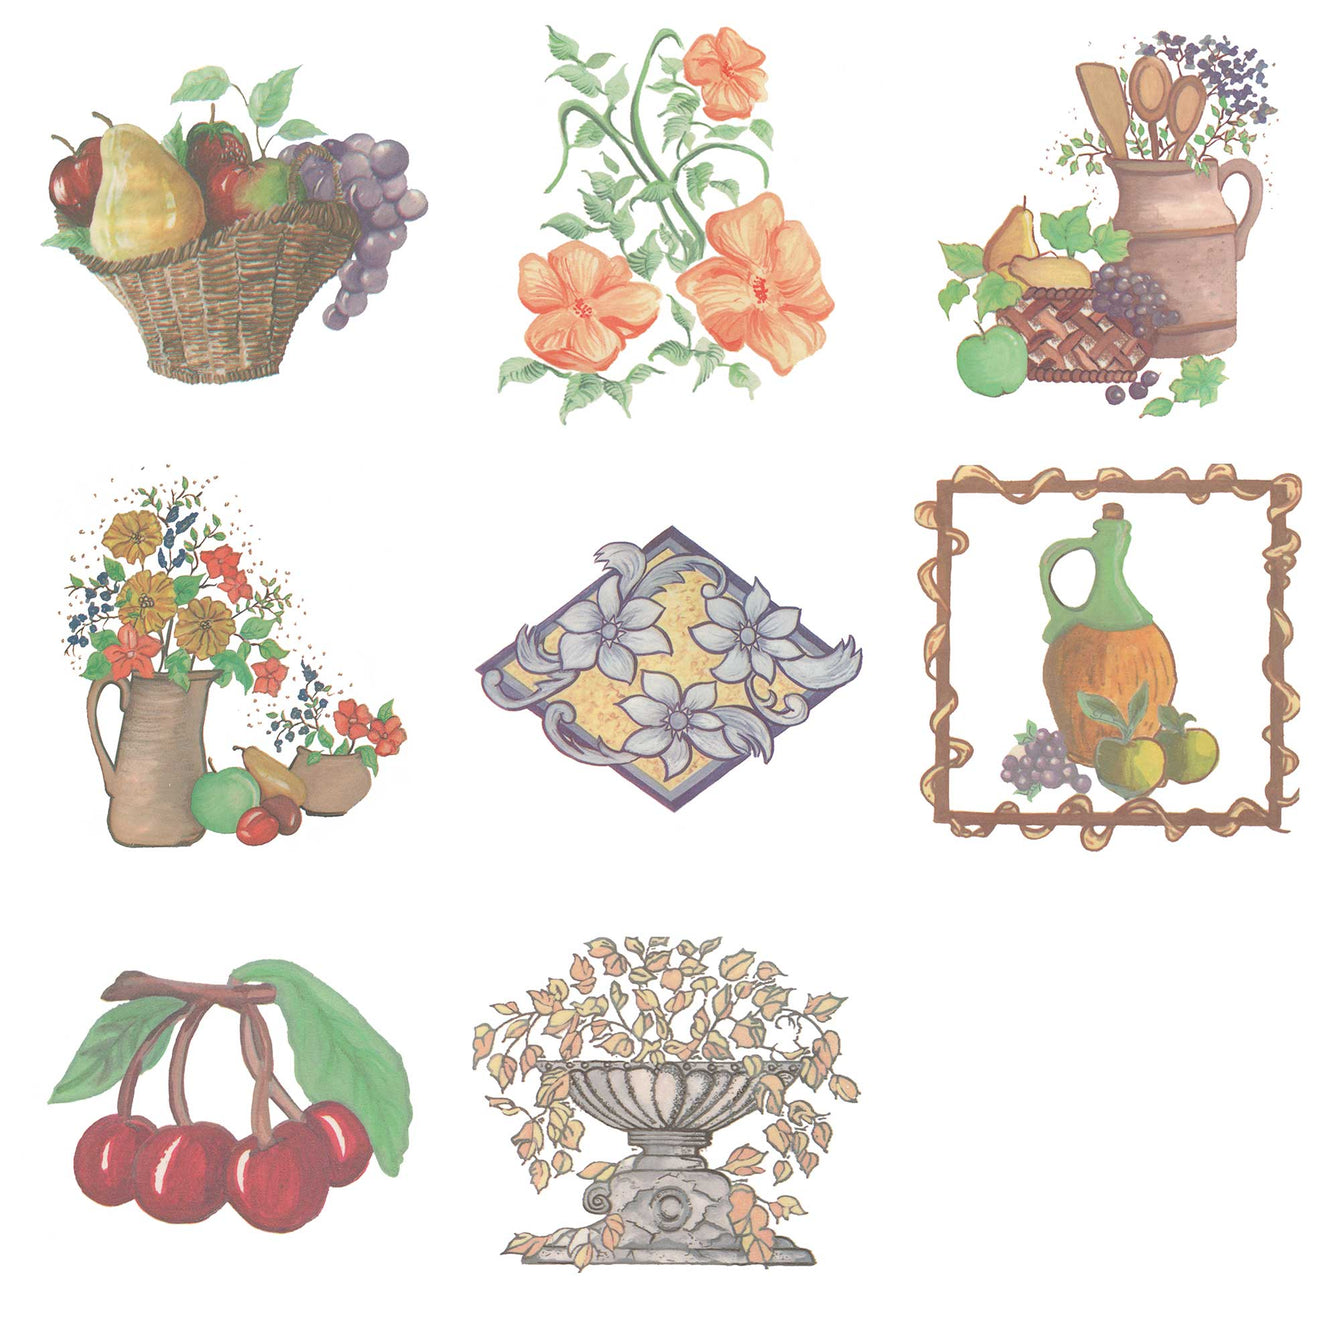 Water Slide Tile Transfers Inset Evesham Fair Basket of Fruit 5 Pack - Buy It Better Evesham Fair